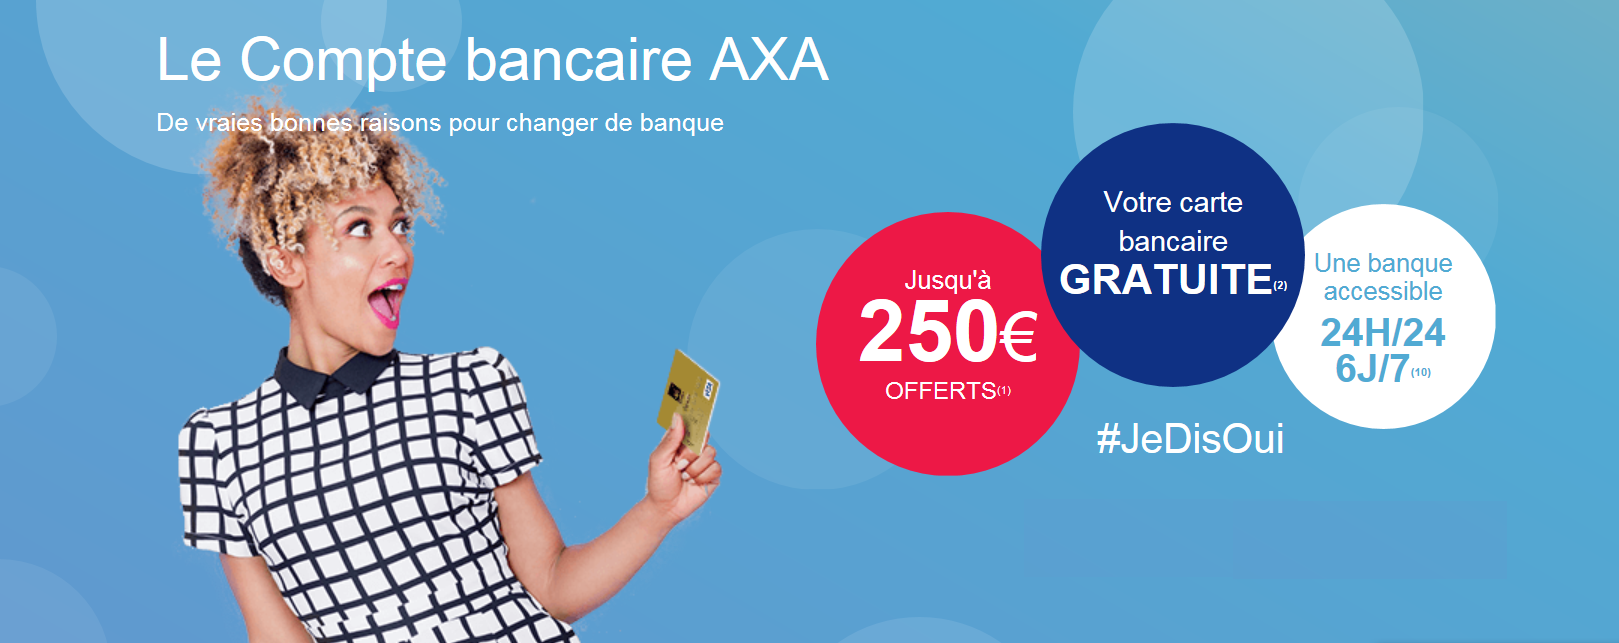 comment ouvrir un compte bancaire axa banque assurances axa. Black Bedroom Furniture Sets. Home Design Ideas